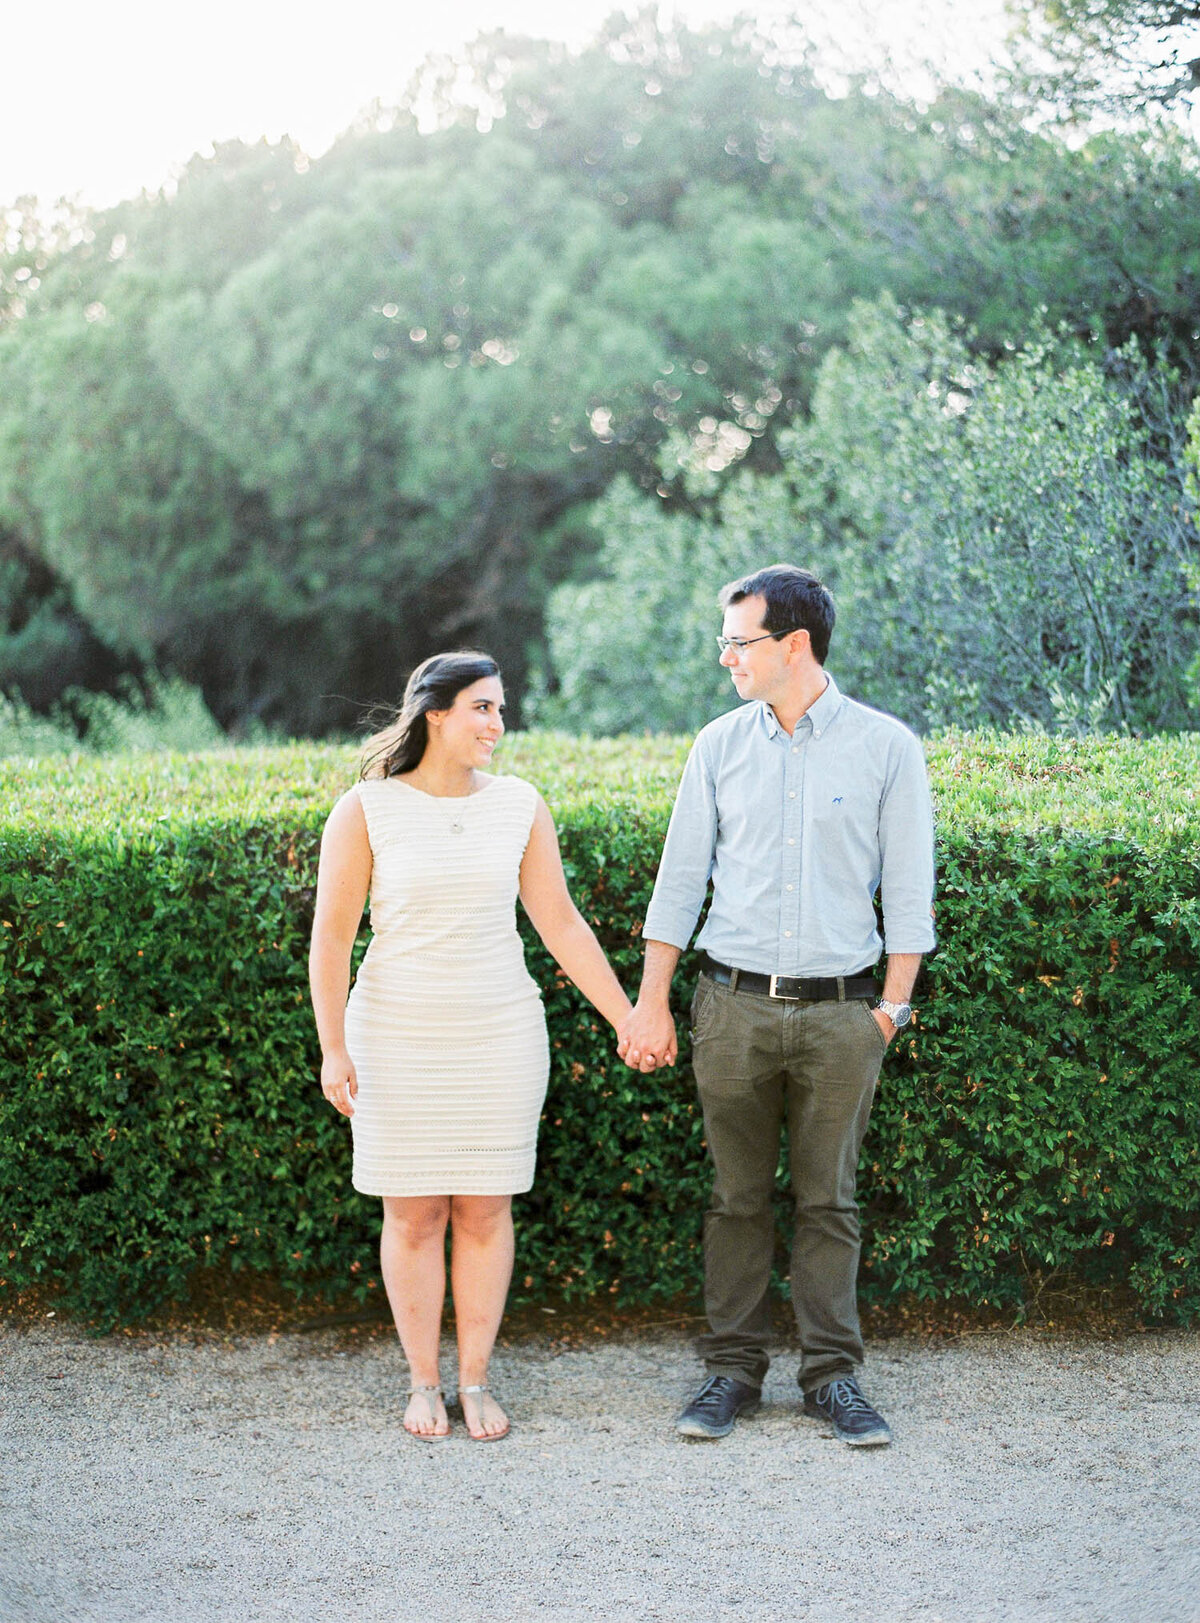 magical-engagement-in-monsanto-park-4